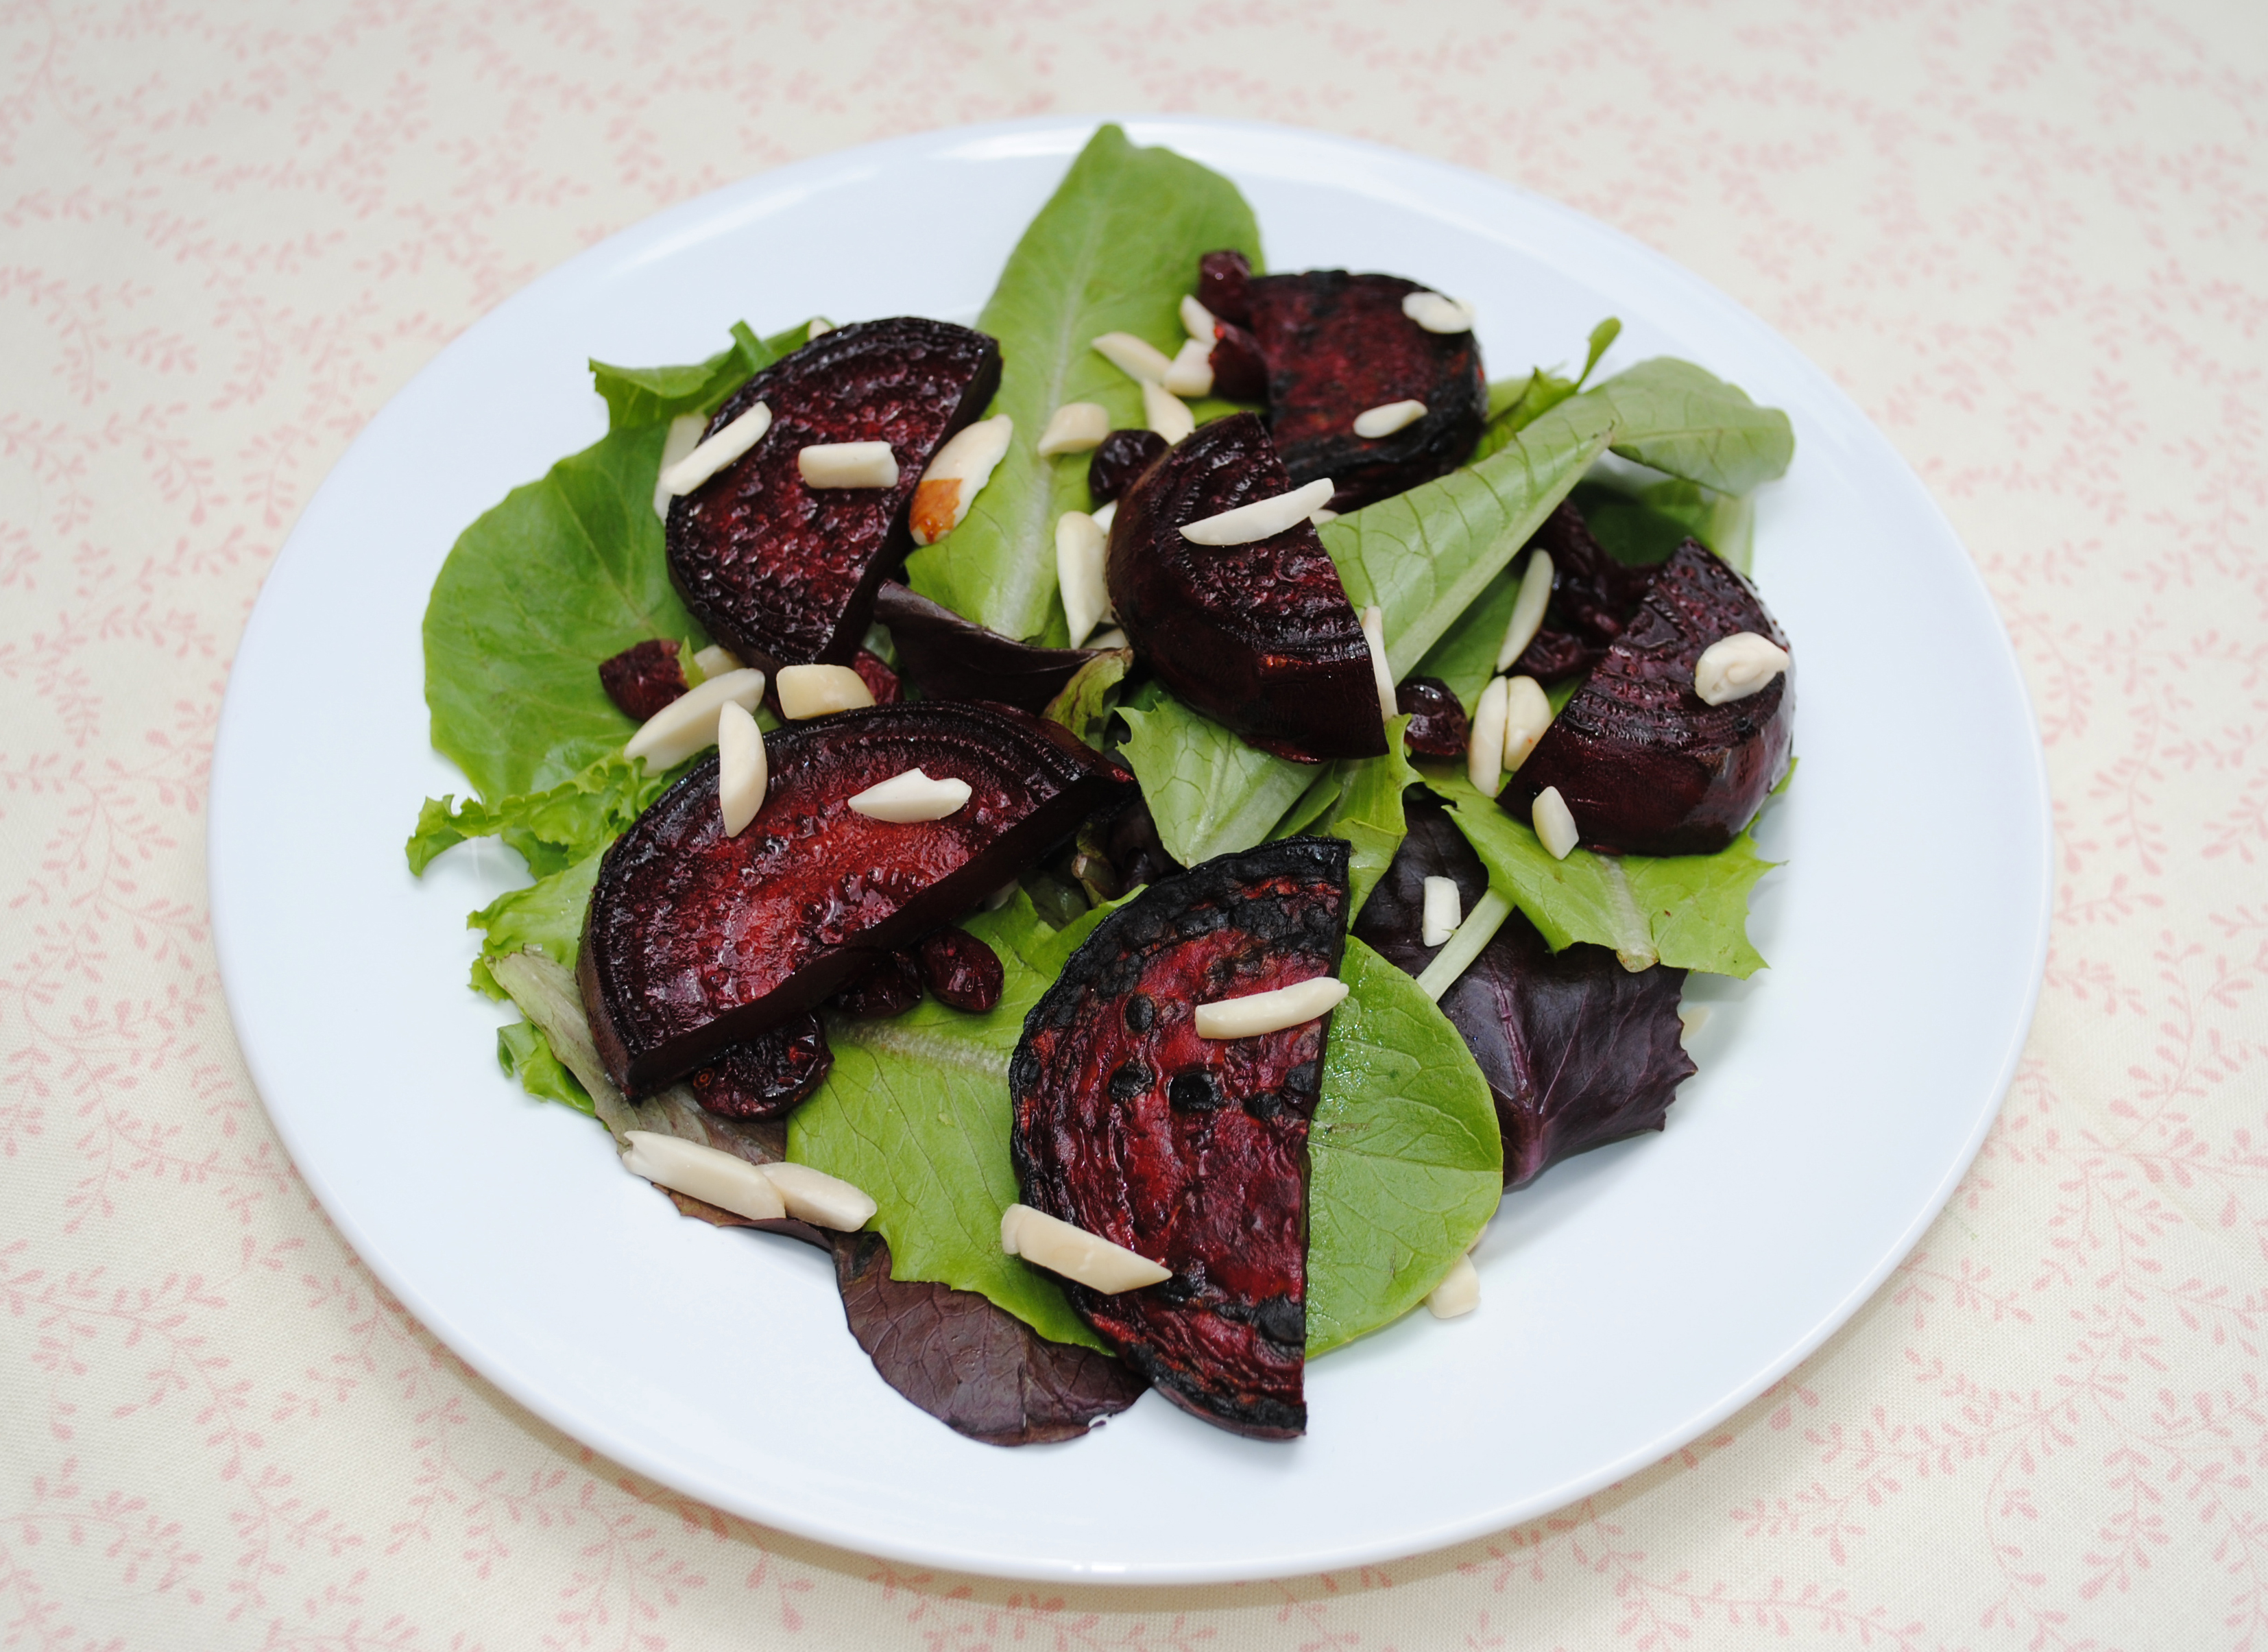 Grilled Beet Salad with Almonds and Dried Cranberries